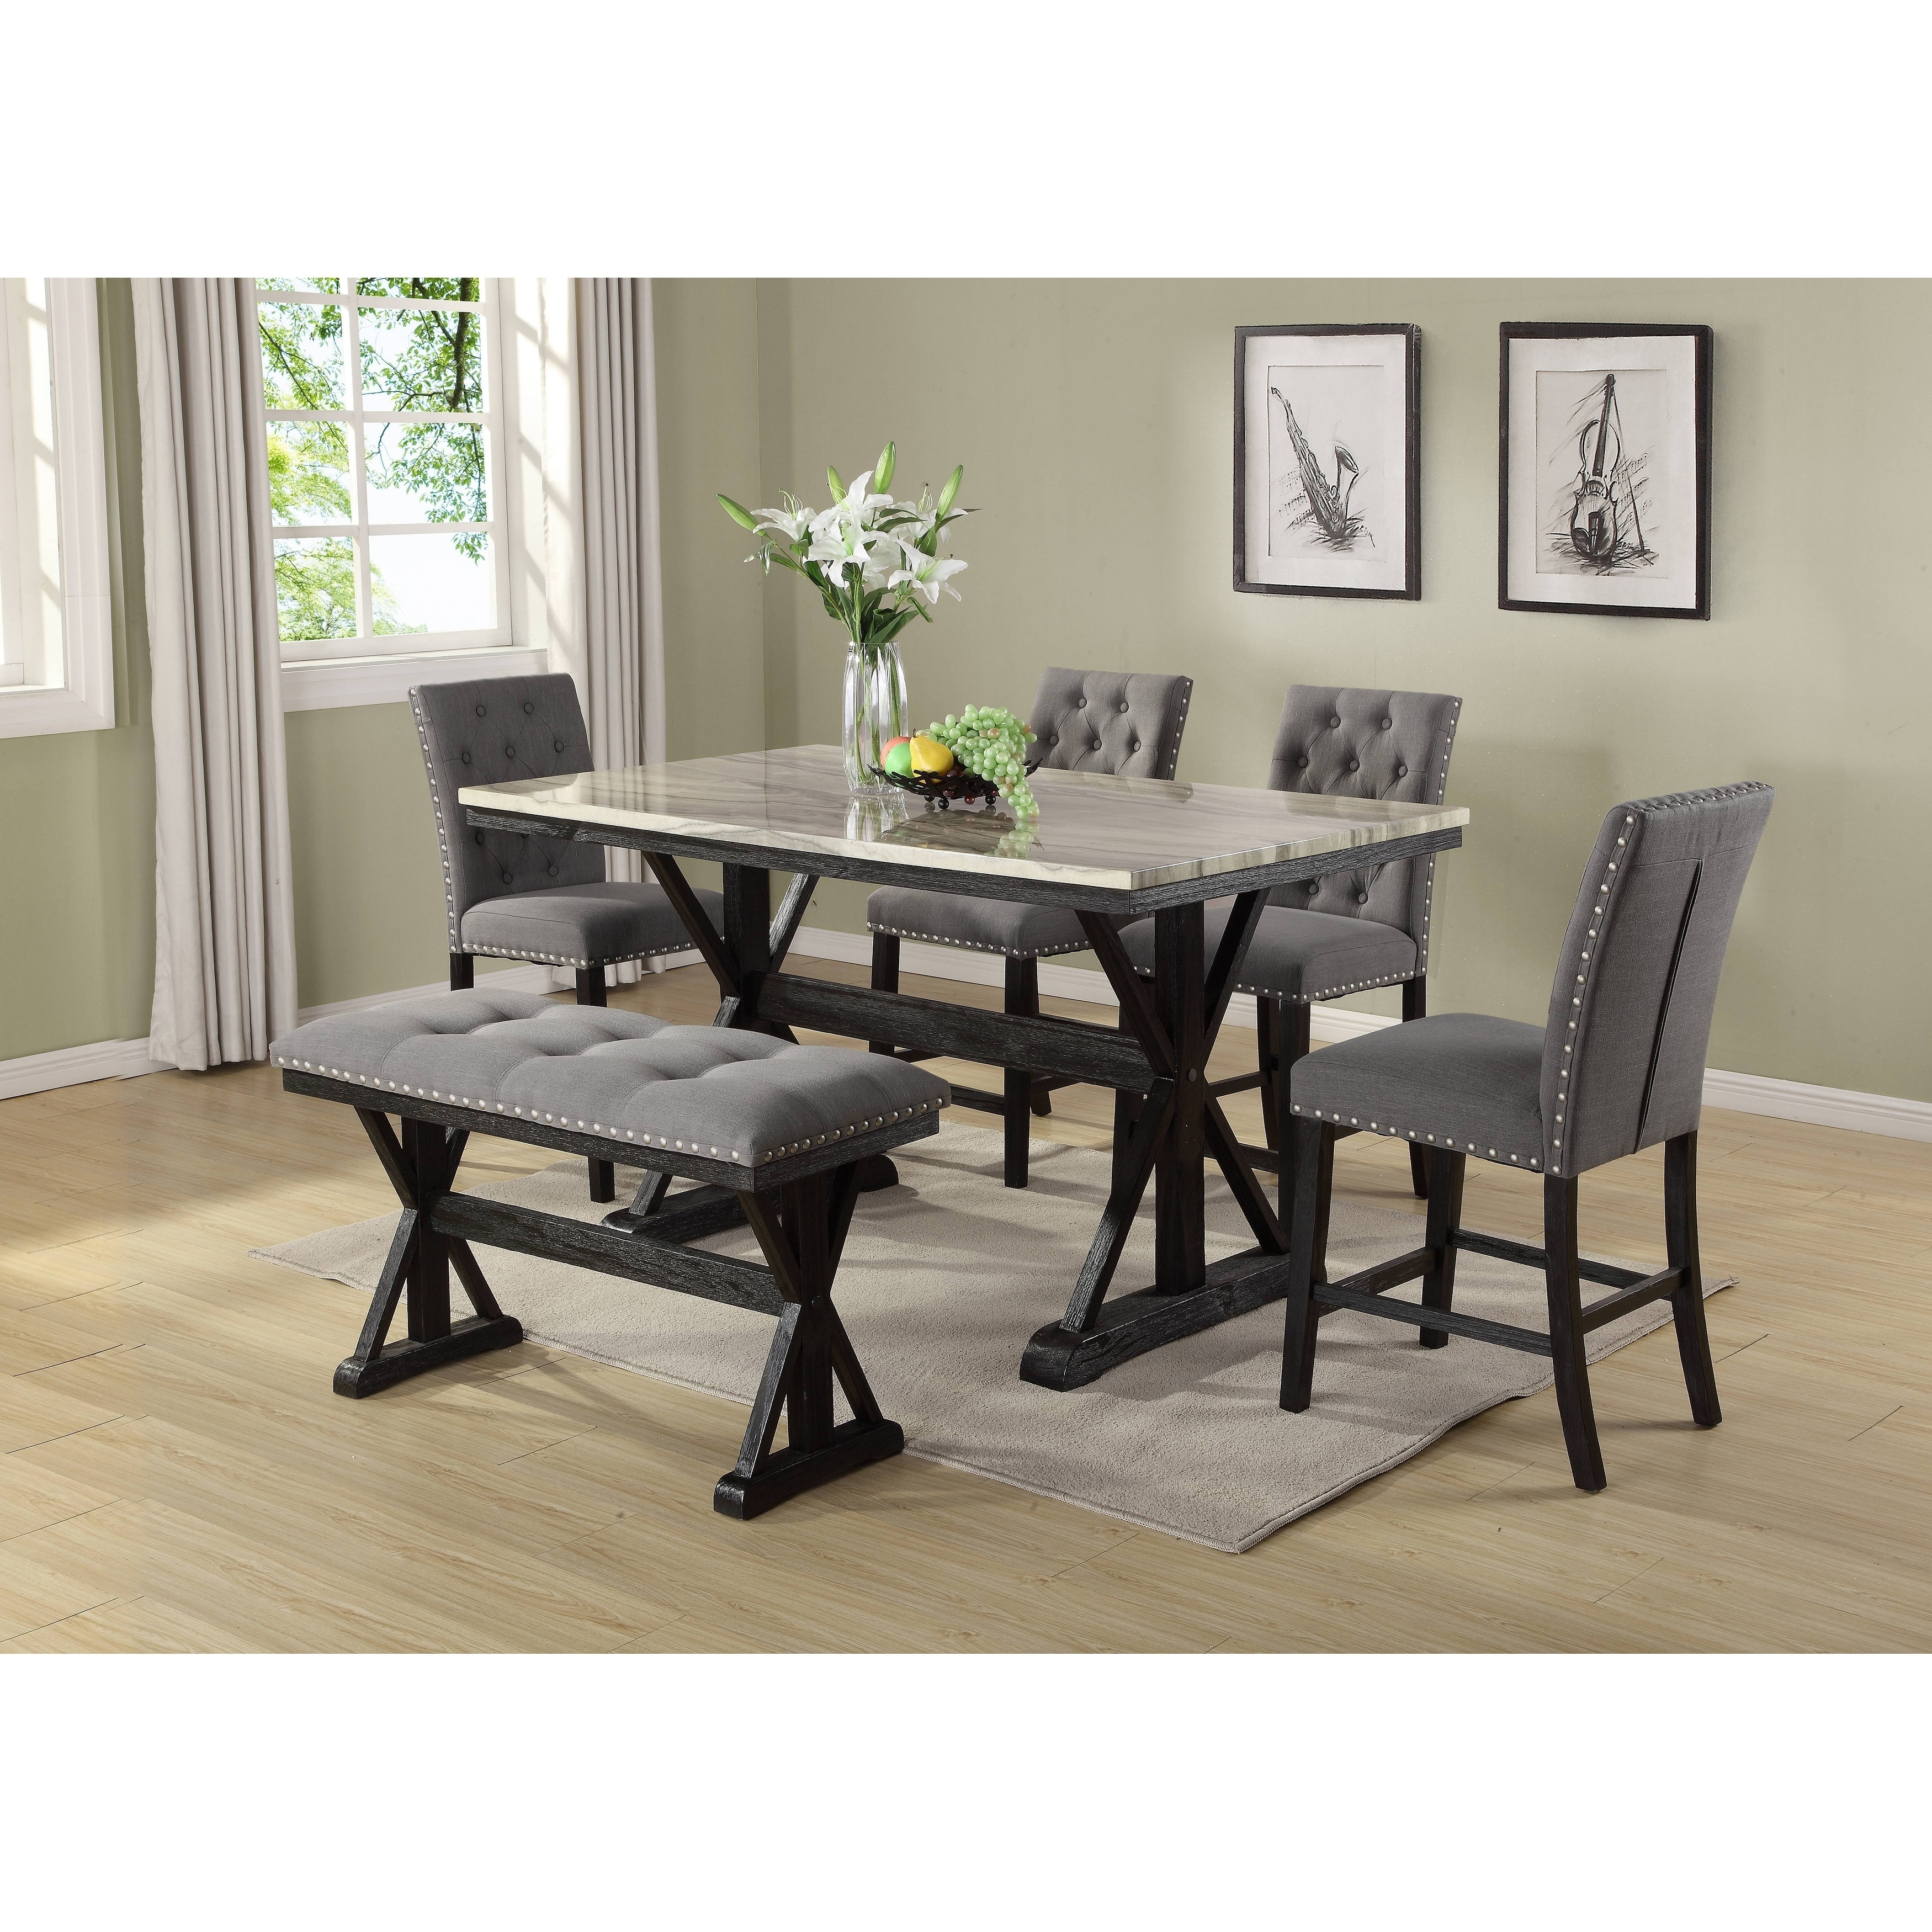 Best Quality Furniture Counter Height 6 Piece Dining Set W Faux Marble Table Top And Counter Height Bench On Sale Overstock 28979659